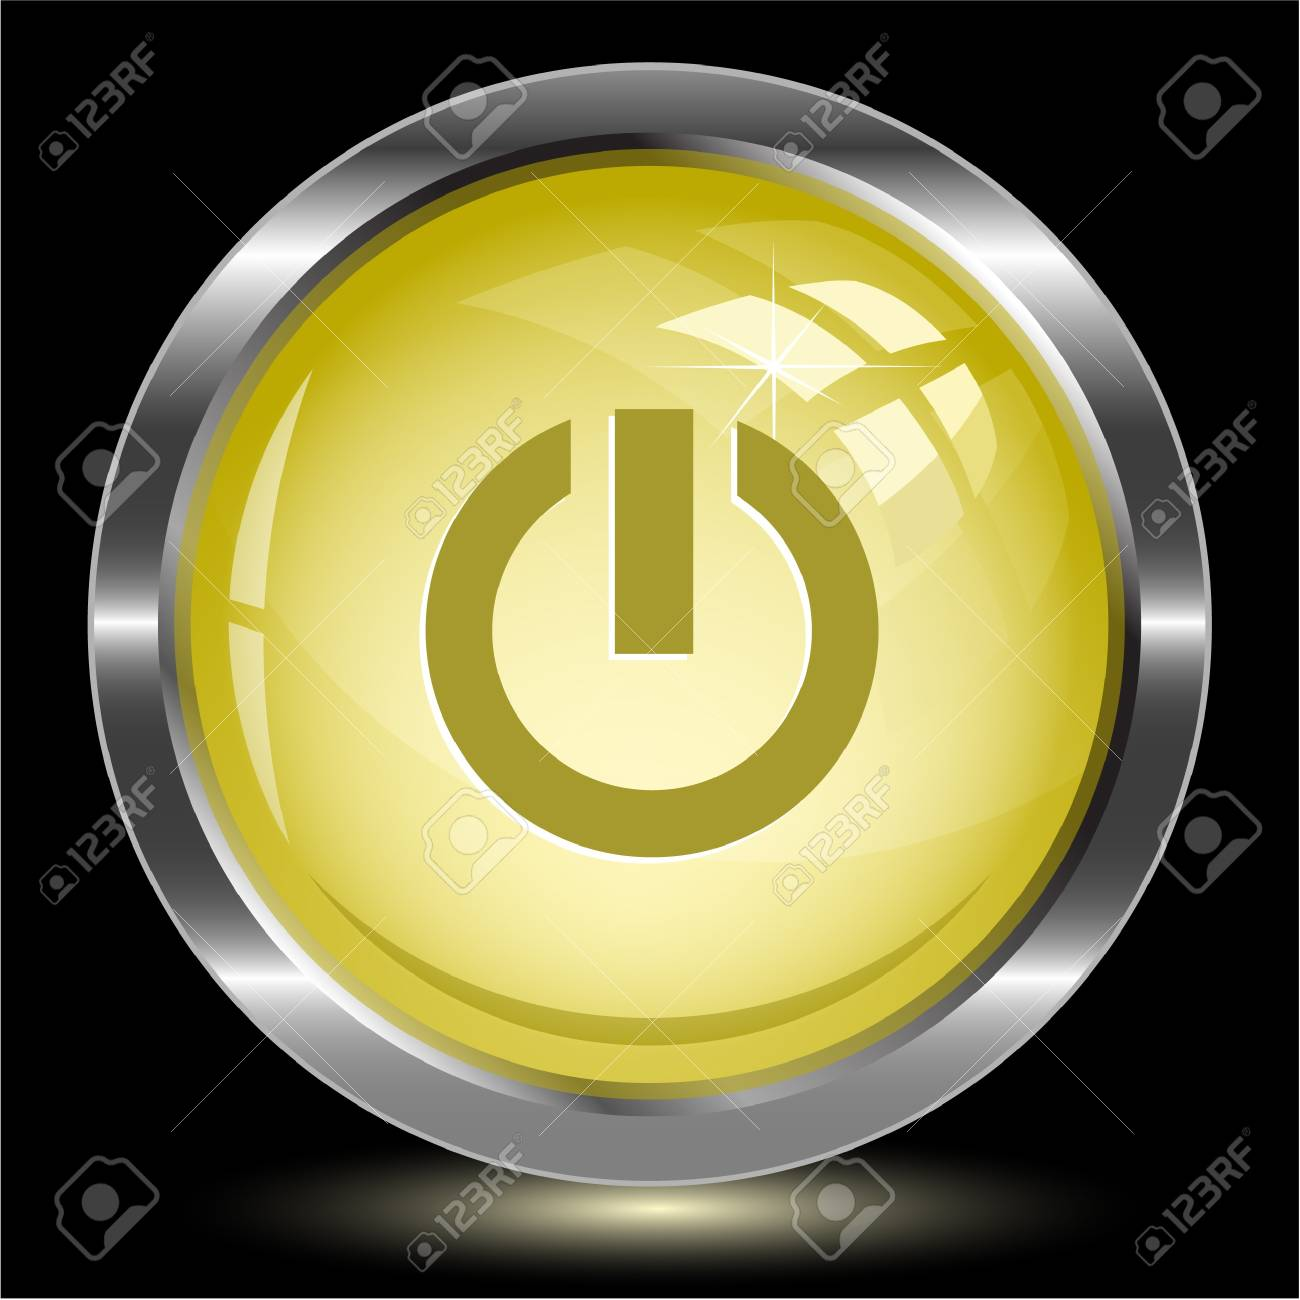 Switch element. Internet button.  illustration. Stock Photo - 17240284